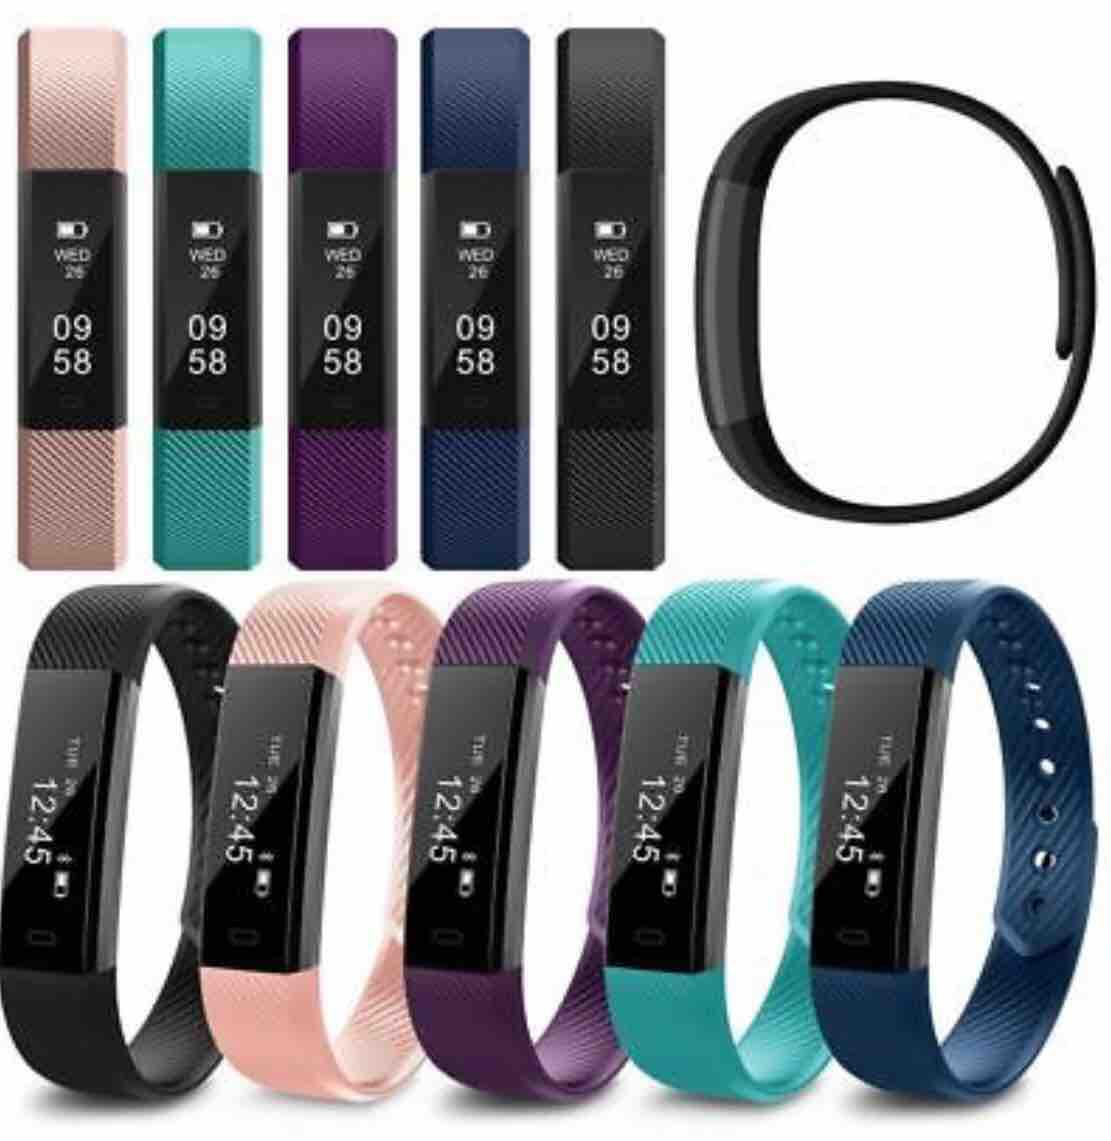 Gloryworld Replacement Silicone Smart Bracelet Band Wrist Strap for Veryfit  ID115/Lite/HR